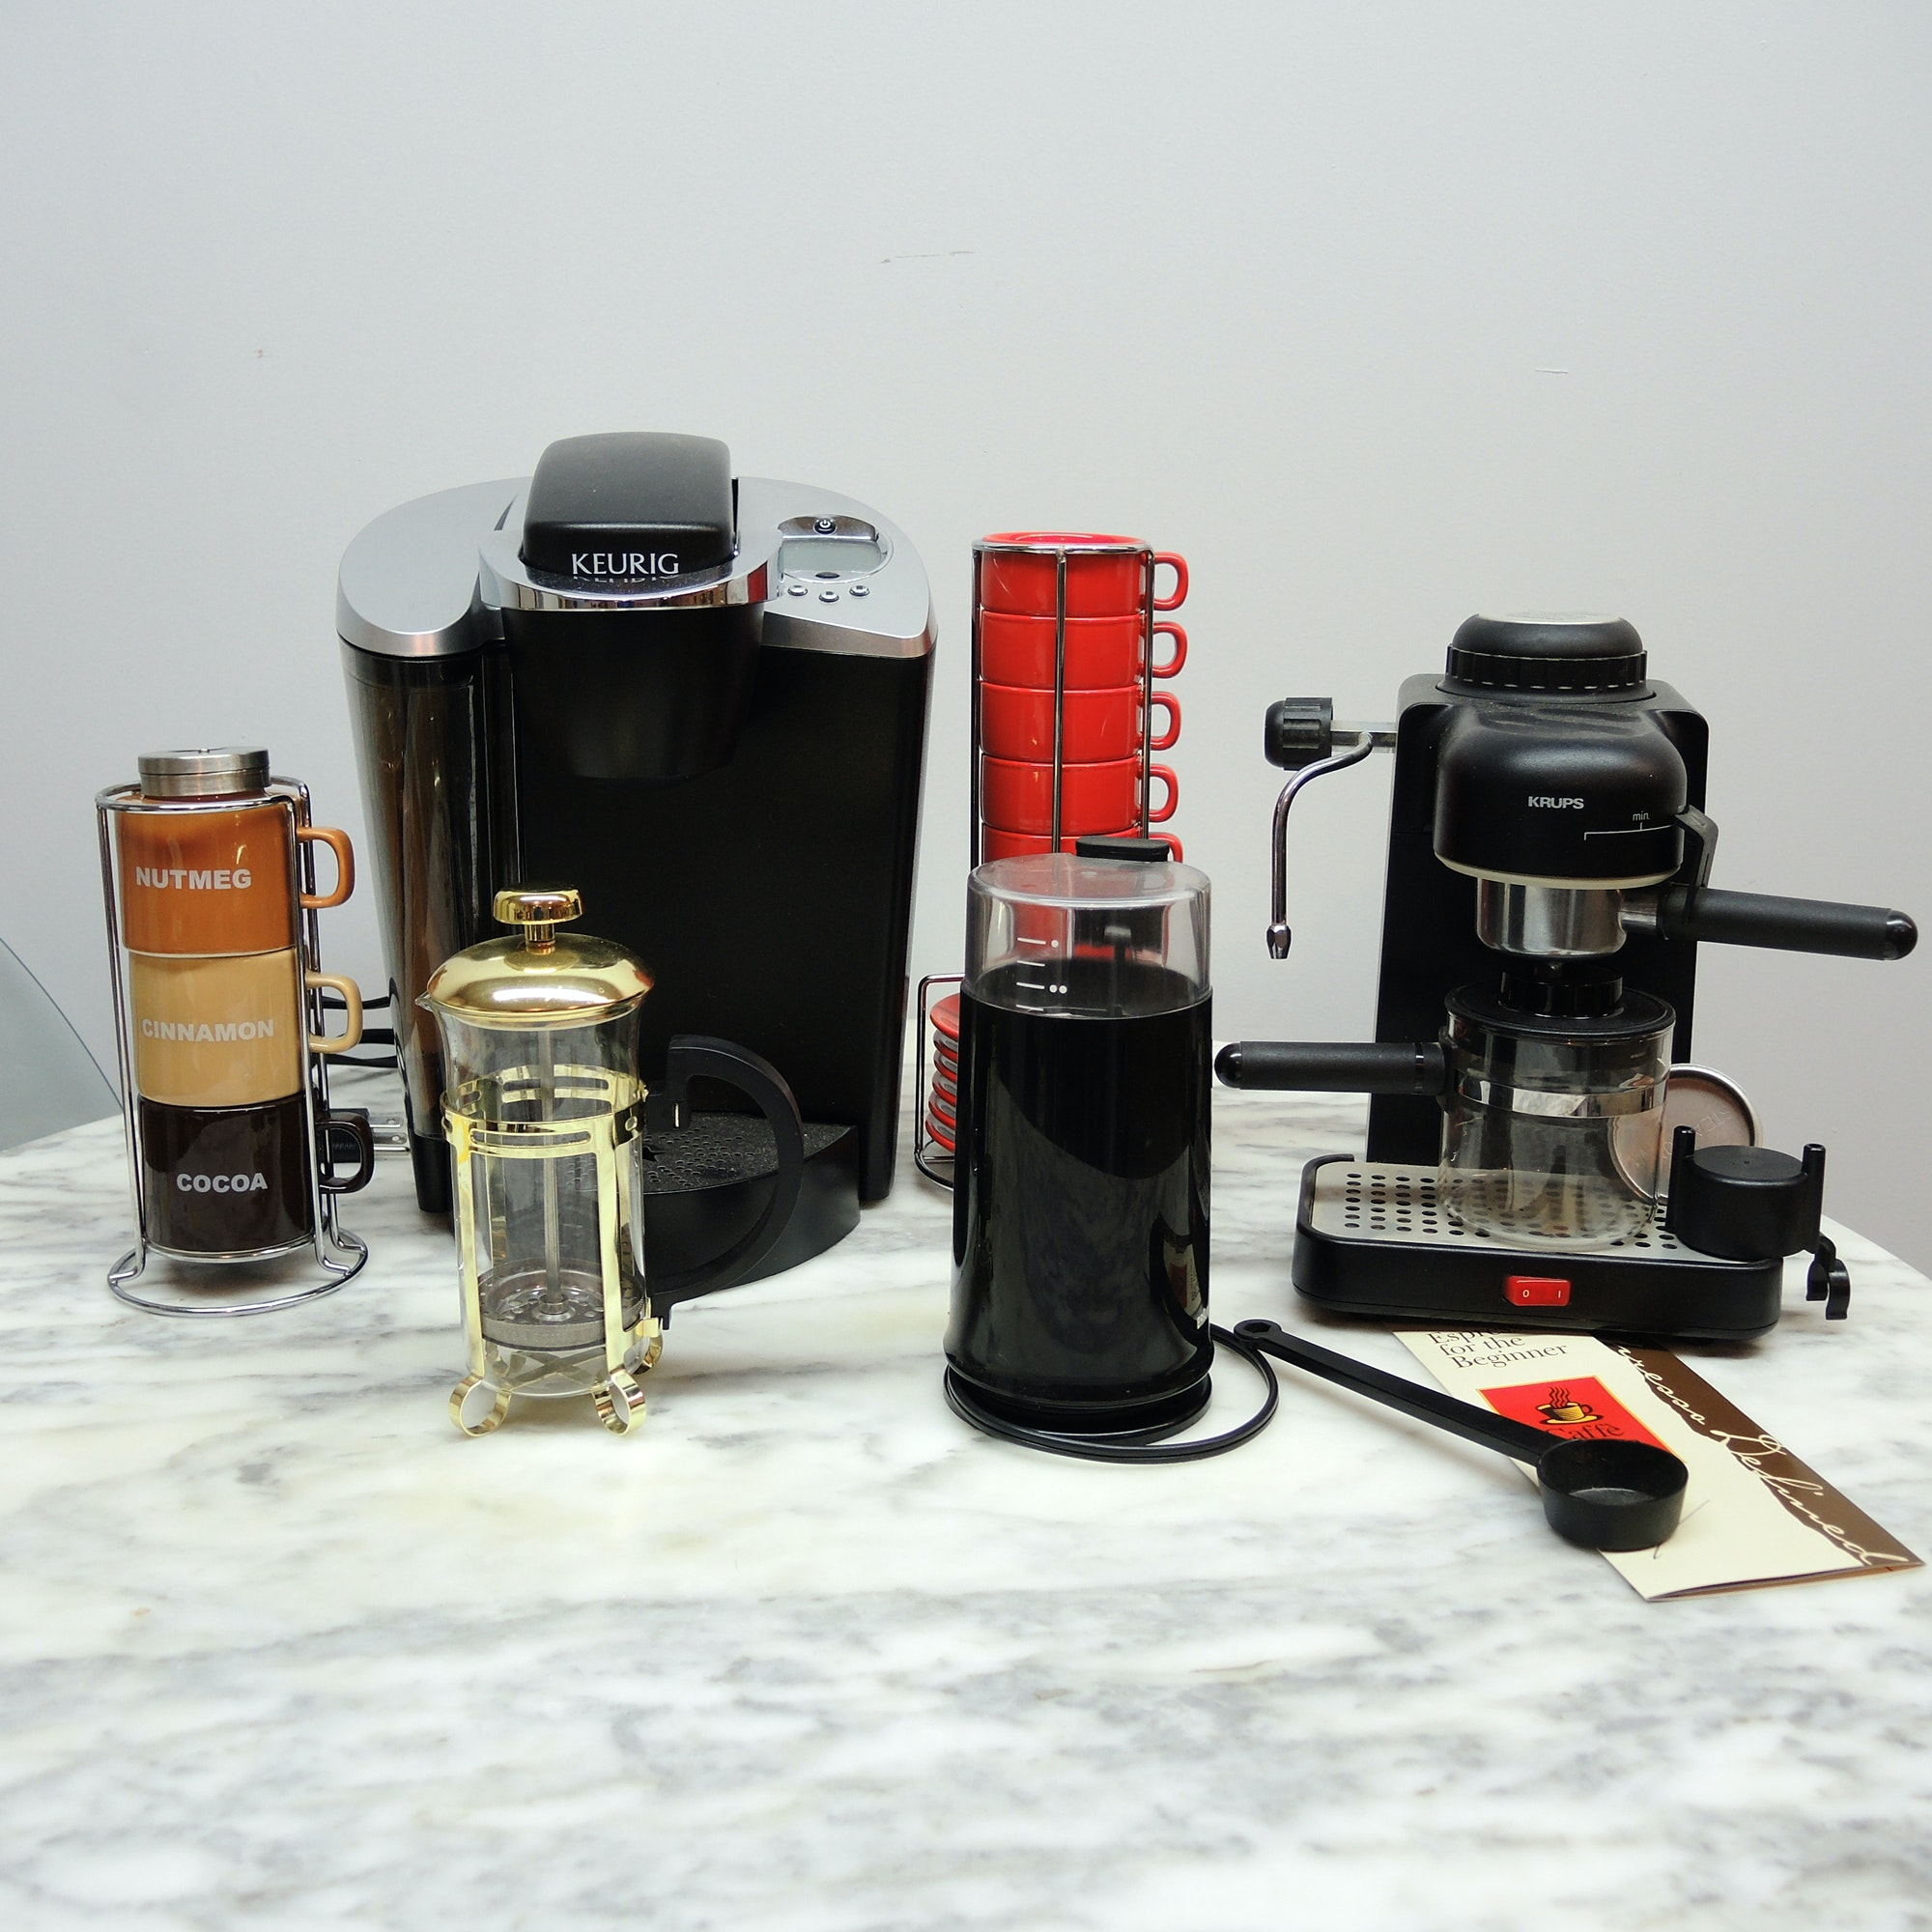 Keurig Coffee and Espresso Machine and More